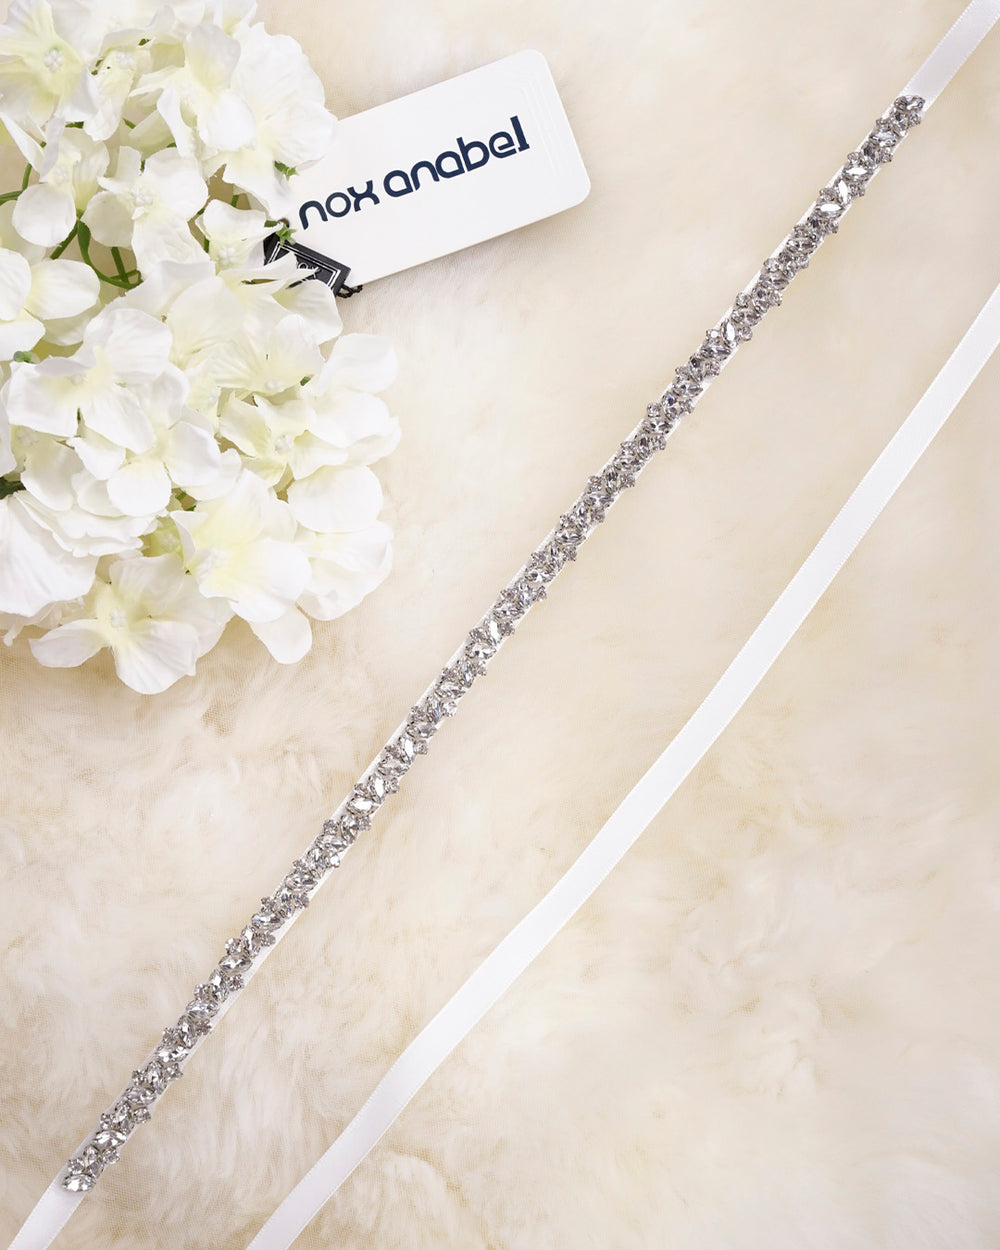 LEAVES SHAPE SLEEK SPARKLY RHINESTONE BRIDLE BELT WEDDING SASH BY NARIANNA